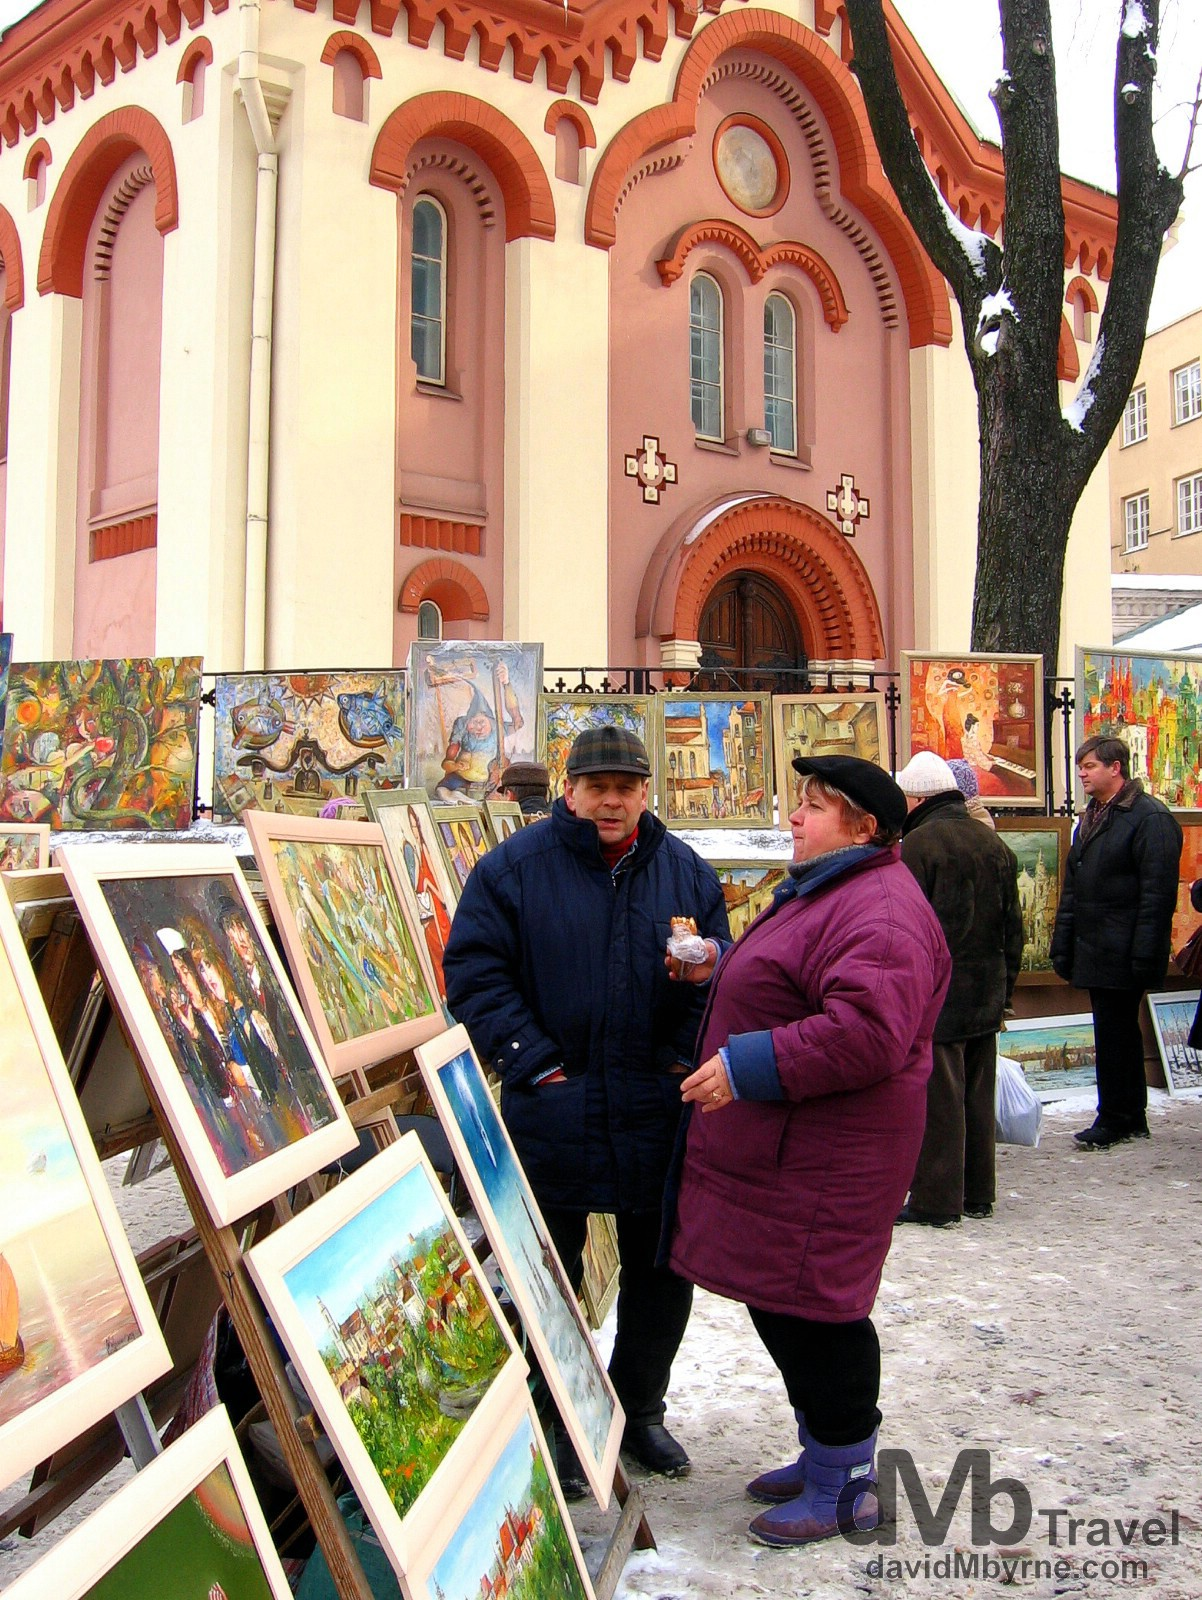 Art for sale on the streets of Vilnius, Lithuania. March 4, 2006.